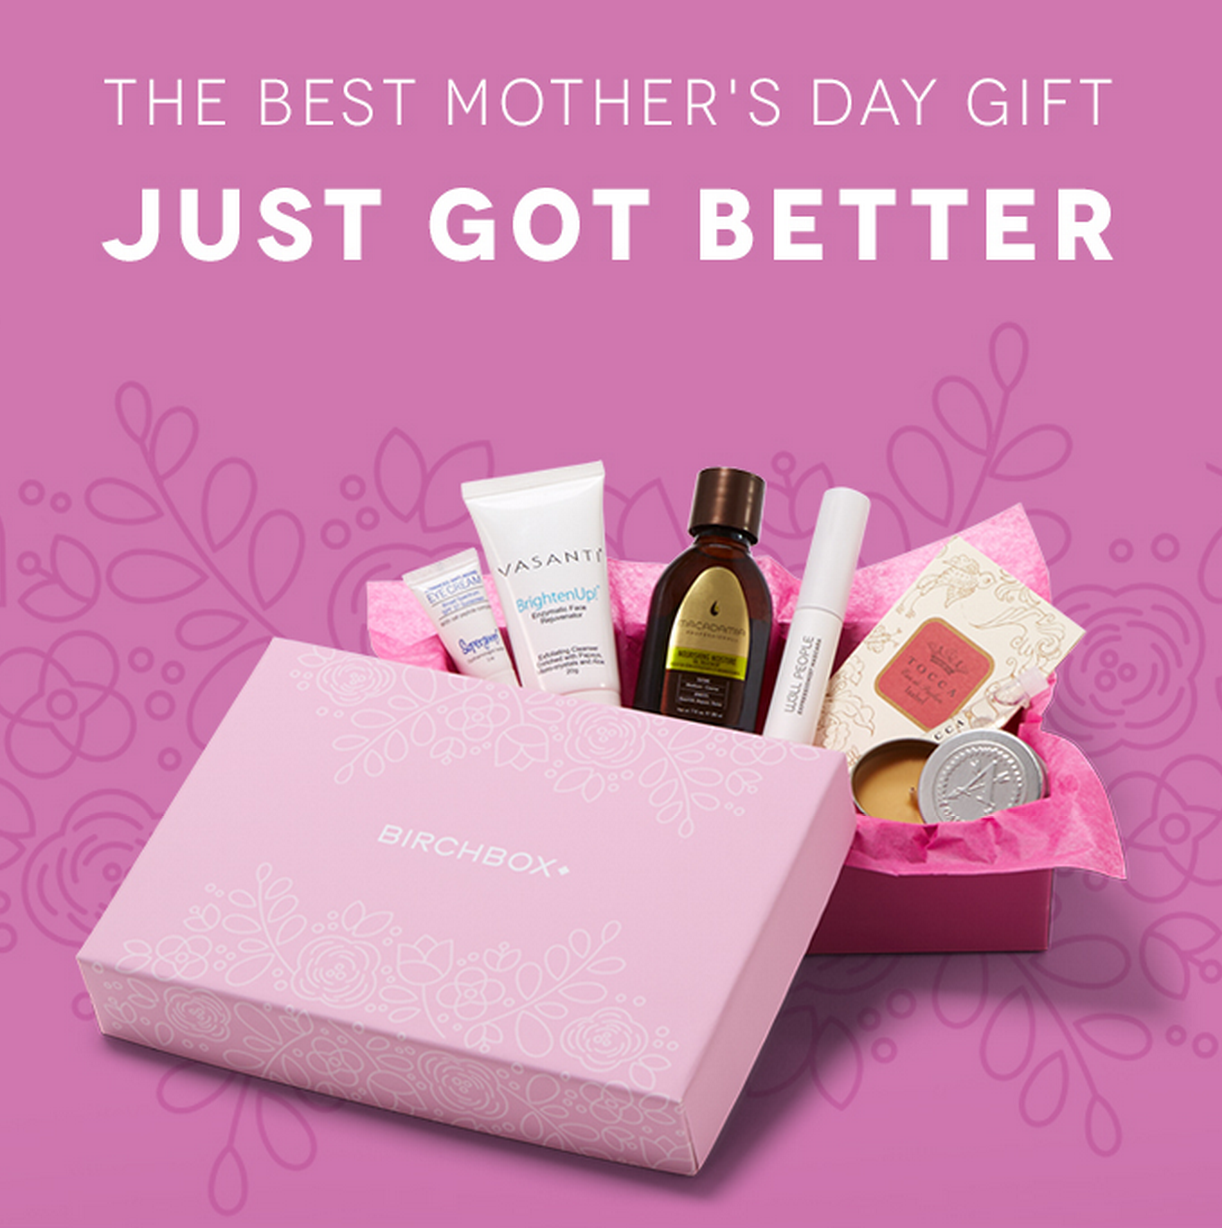 Birchbox Mother's Day Gift Subscription